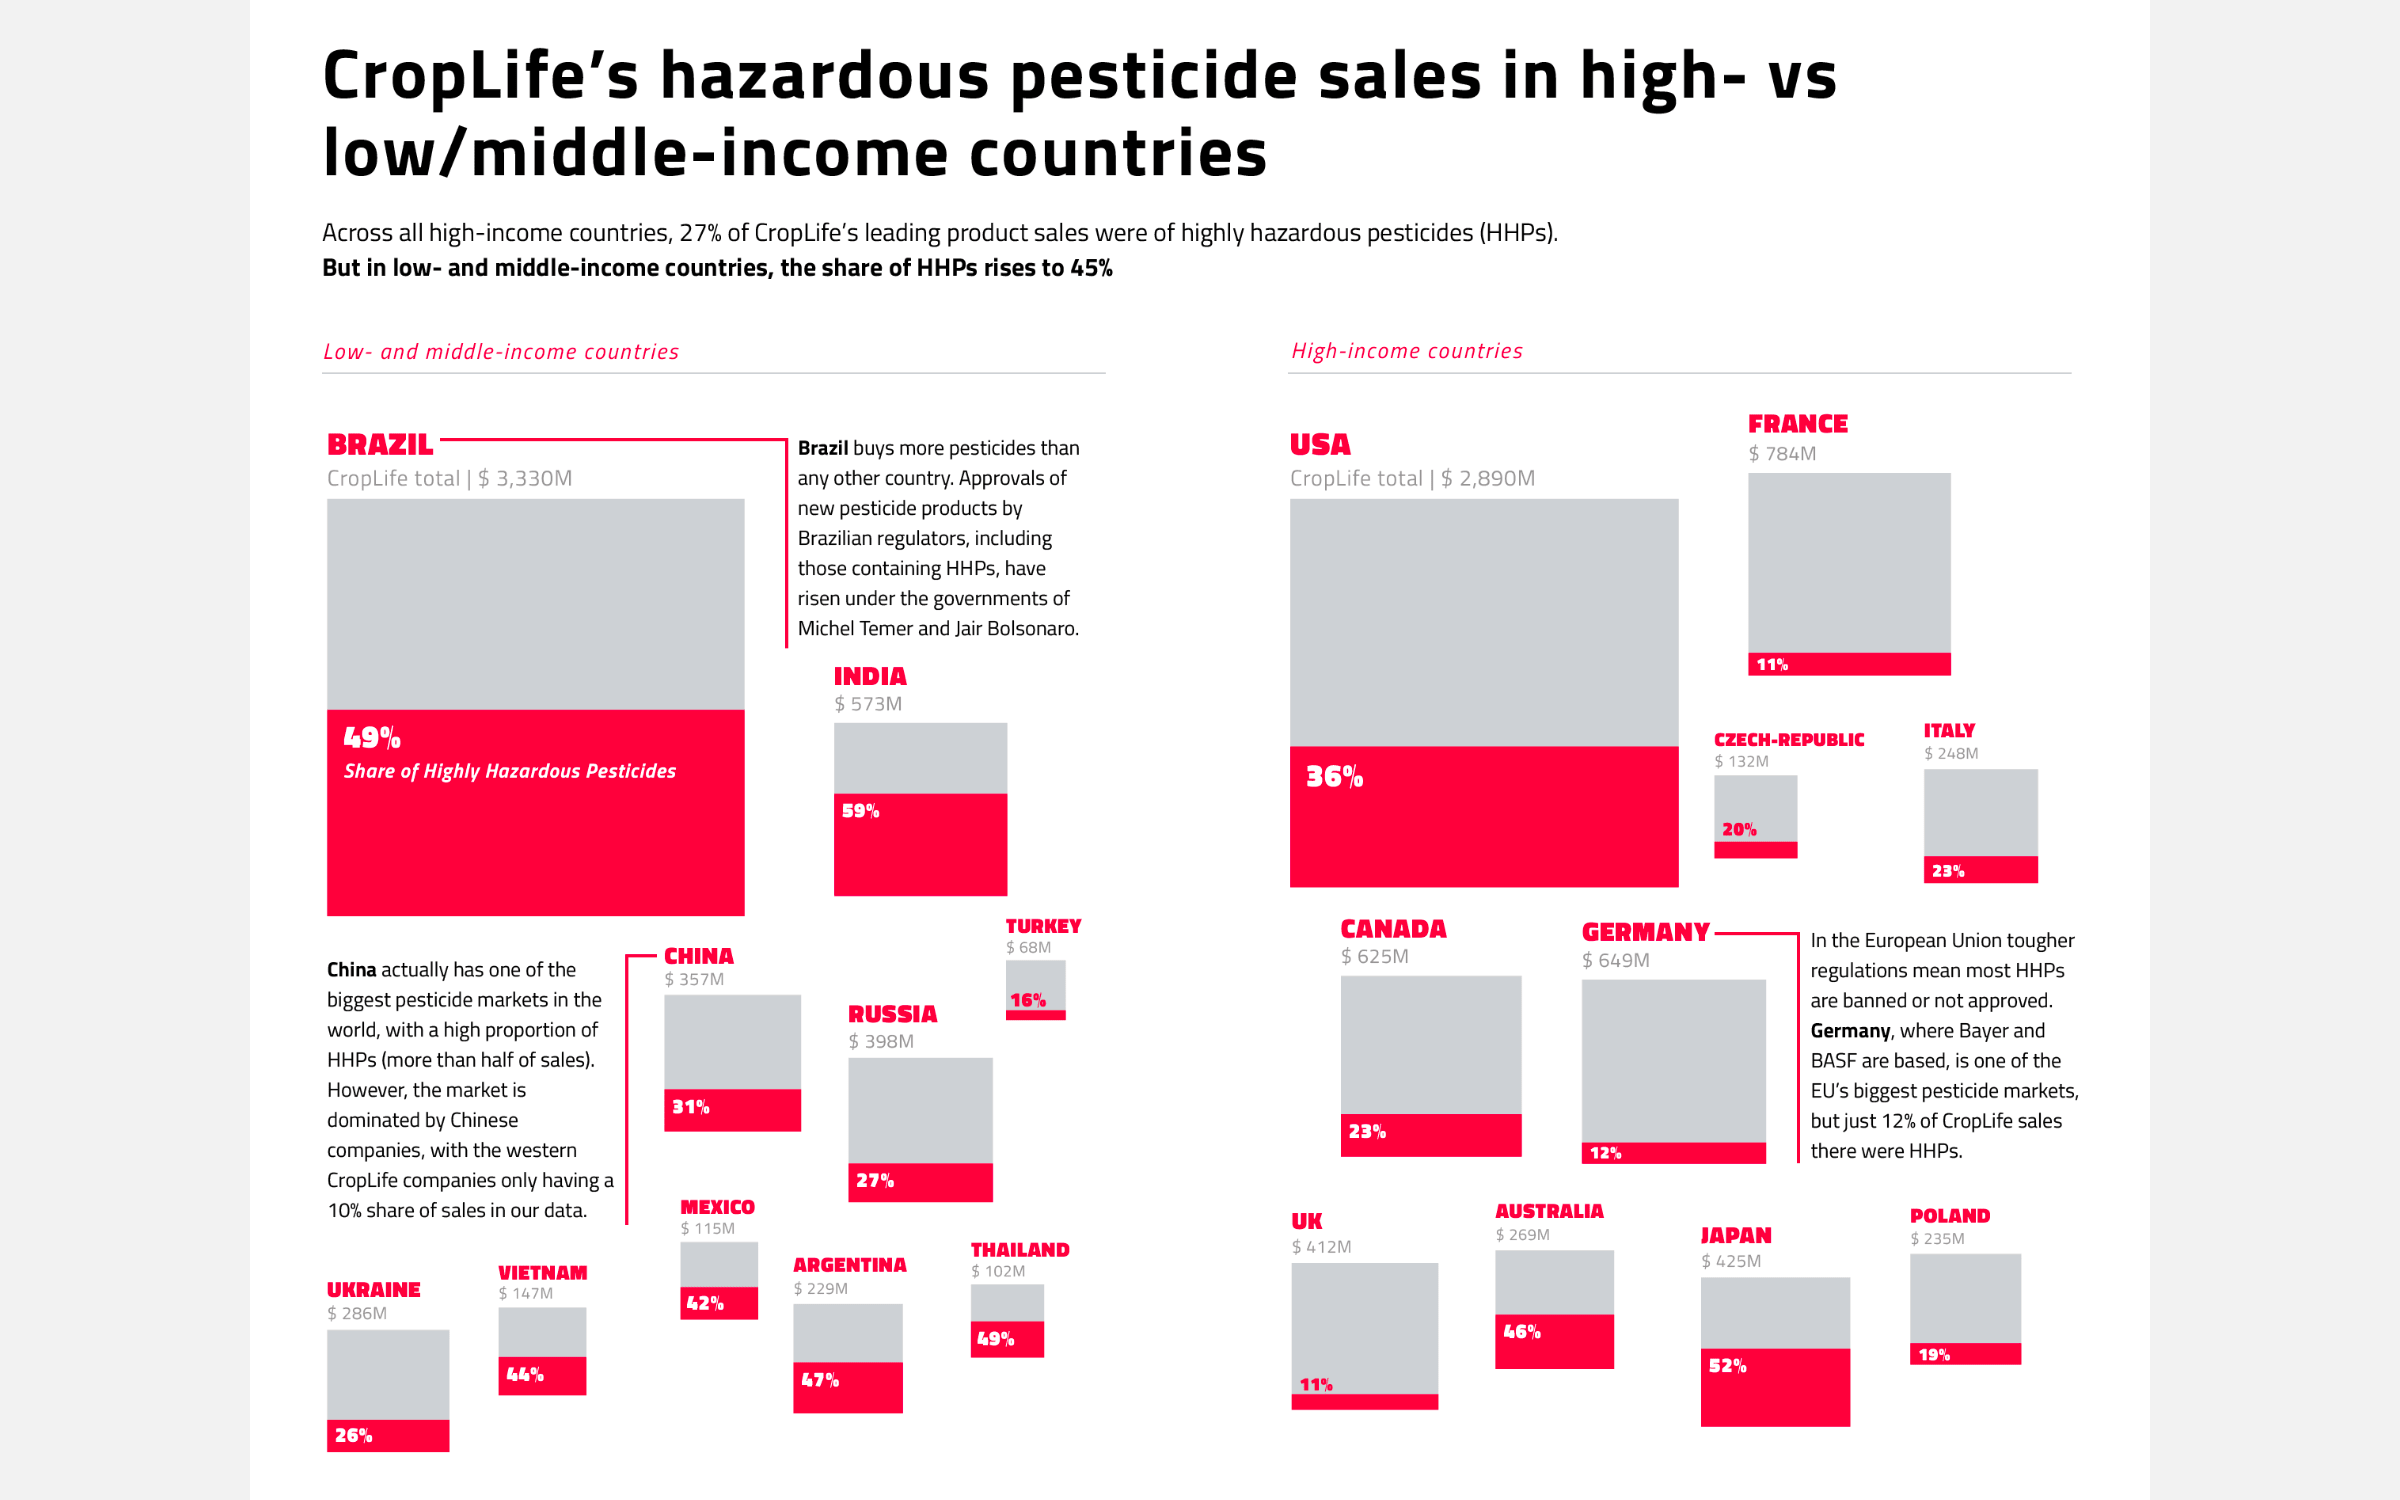 Comparing the percentage of sales between LMIC and high-income countries through a cluster of partially filled squares